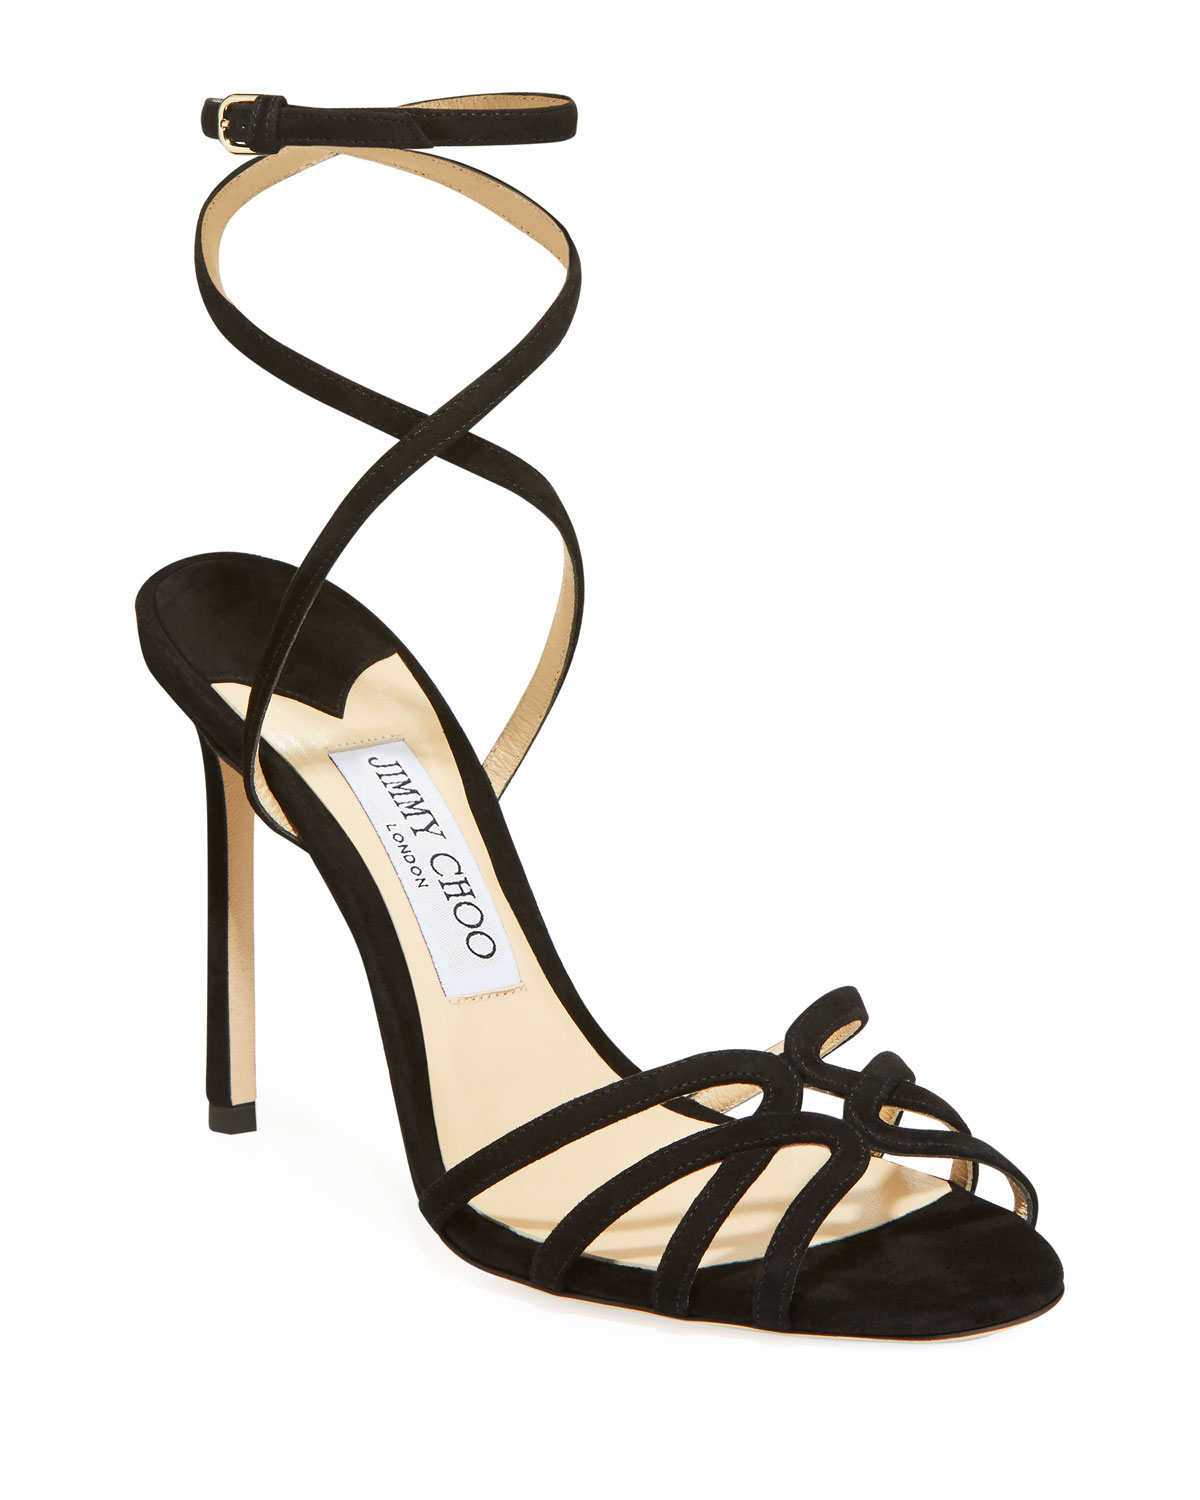 8cb54496d91 Jimmy Choo Mimi 100mm Suede Sandals